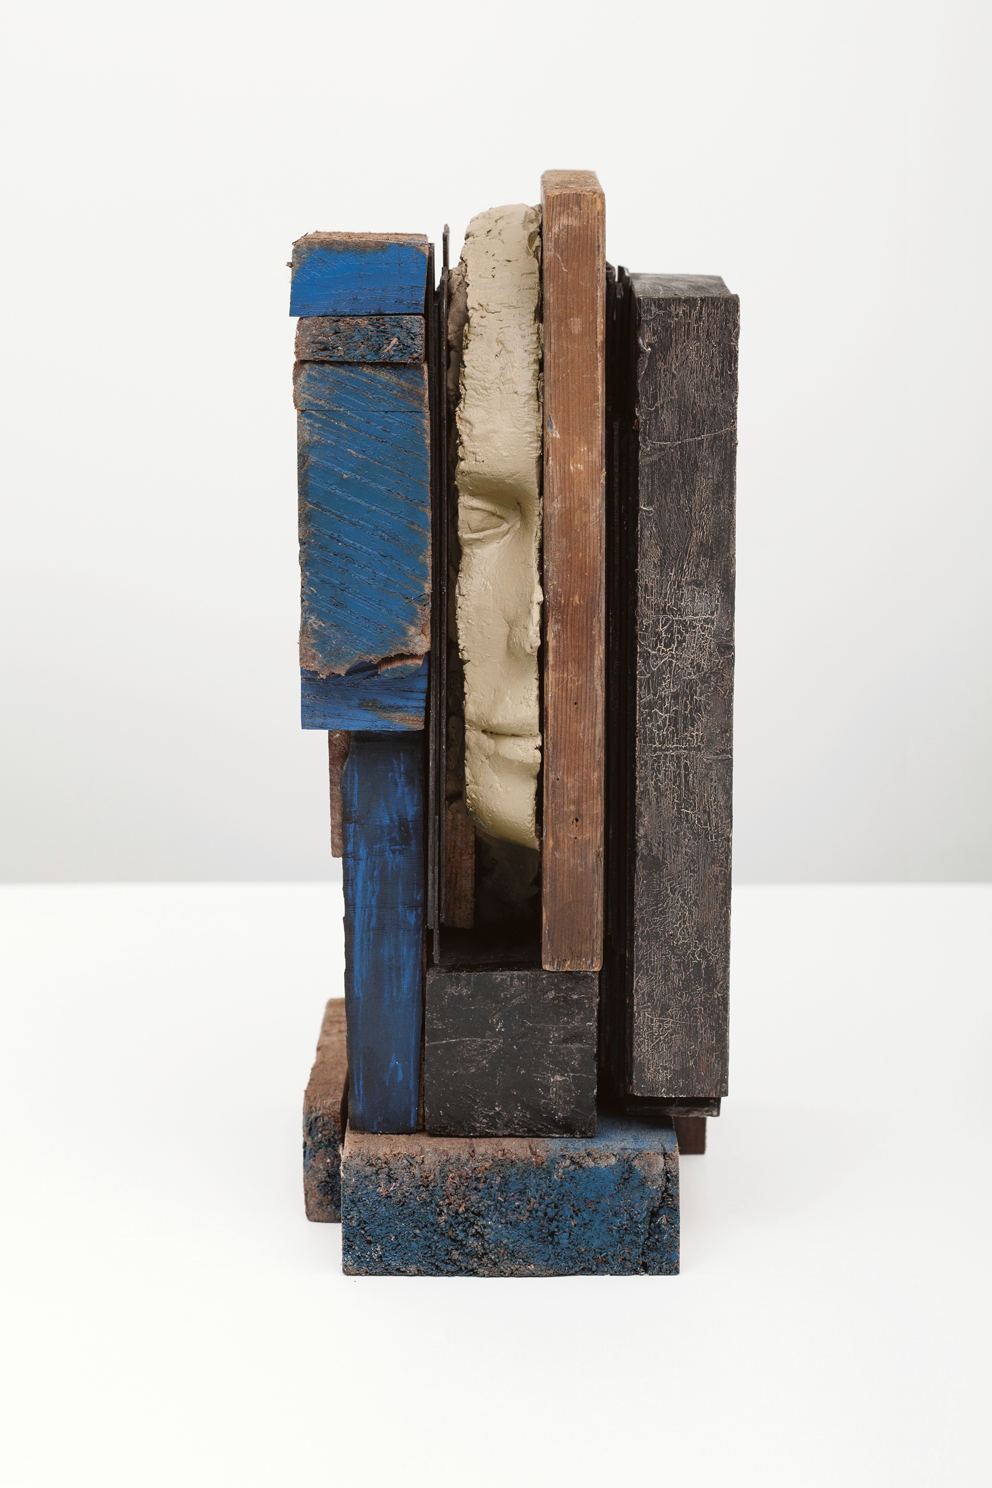 Mark Manders, Composition with Blue, 2013